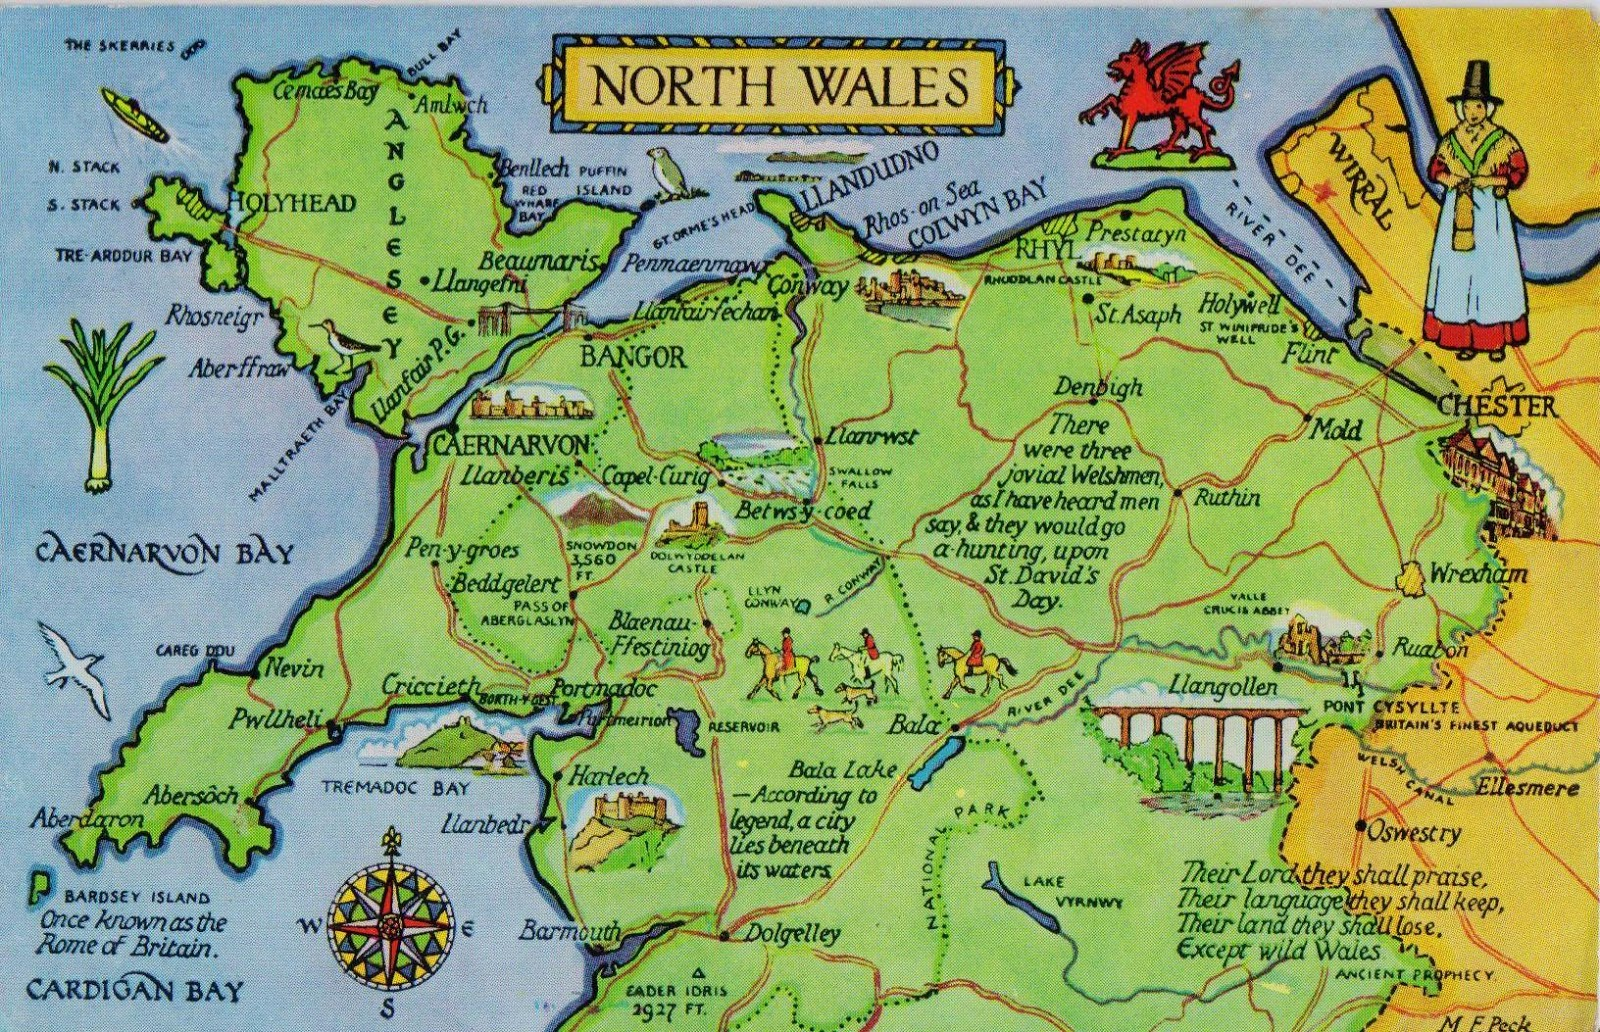 MishCards - postcrossing blog: North Wales map and a ... on aberystwyth bay map, castles in northern wales, castles of the world, castles in wales uk, british castles map, castles of the european middle ages, castles in sweden map, castles to stay in wales, castles in netherlands map, castles in north wales, caerphilly england map, castles in england, castles in wales mapls, brecon castle map, castles in cambodia map, castles spain map, castles of wales, castles near cardiff wales, castles in scotland, castles to stay in ireland,